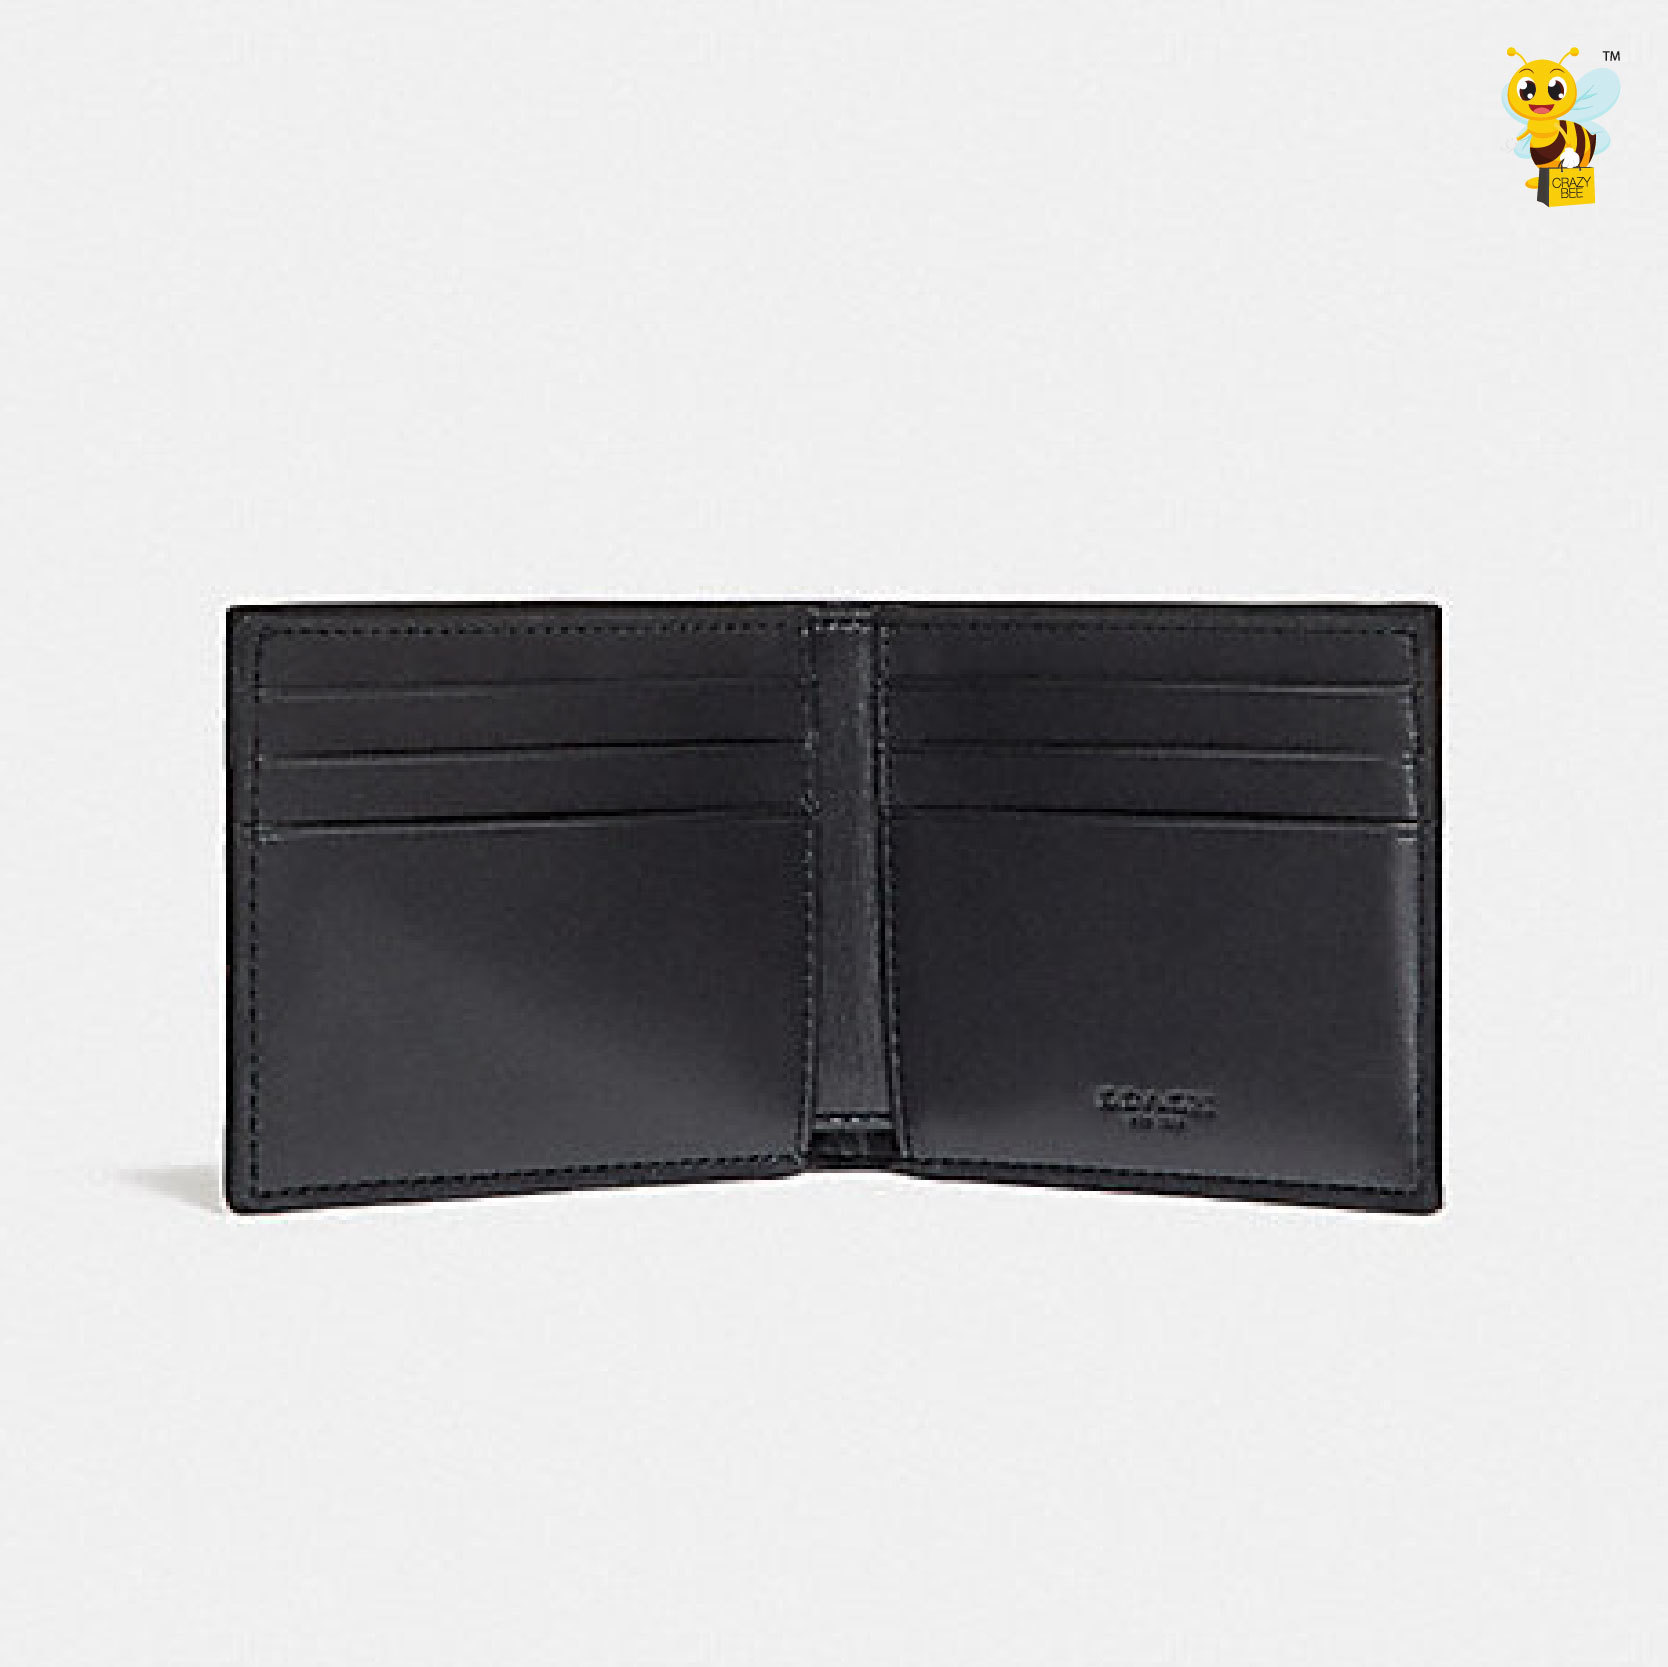 8ede24be8b5d ... closeout coach f26173 slim billfold wallet in signature canvas with varsity  stripe denim chalk 728eb a90f2